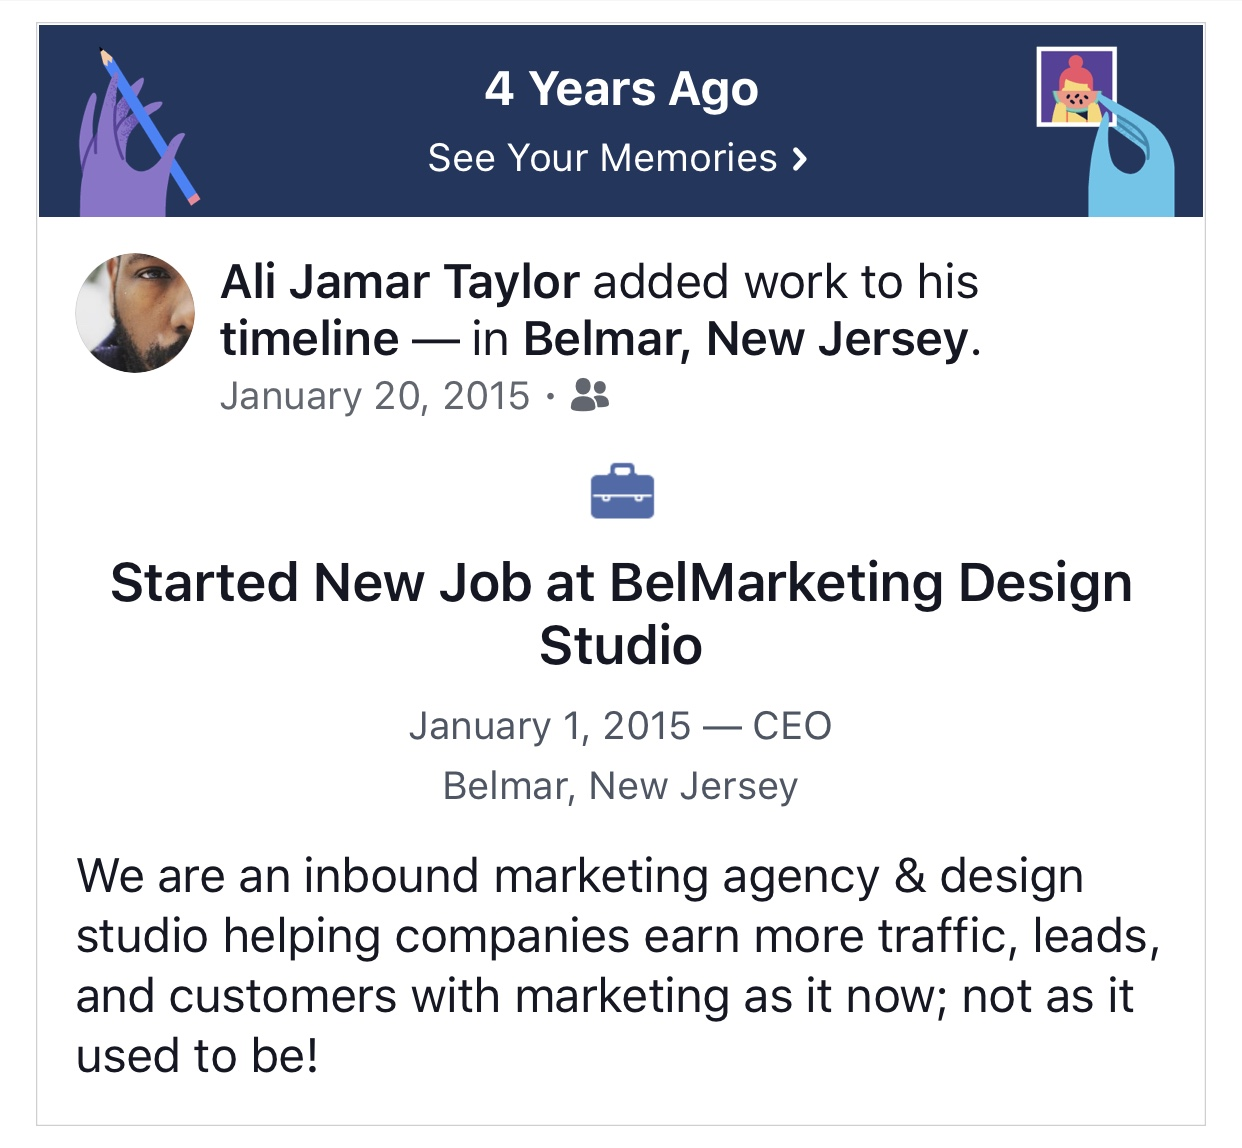 facebook-memory-started-at-belmarketing